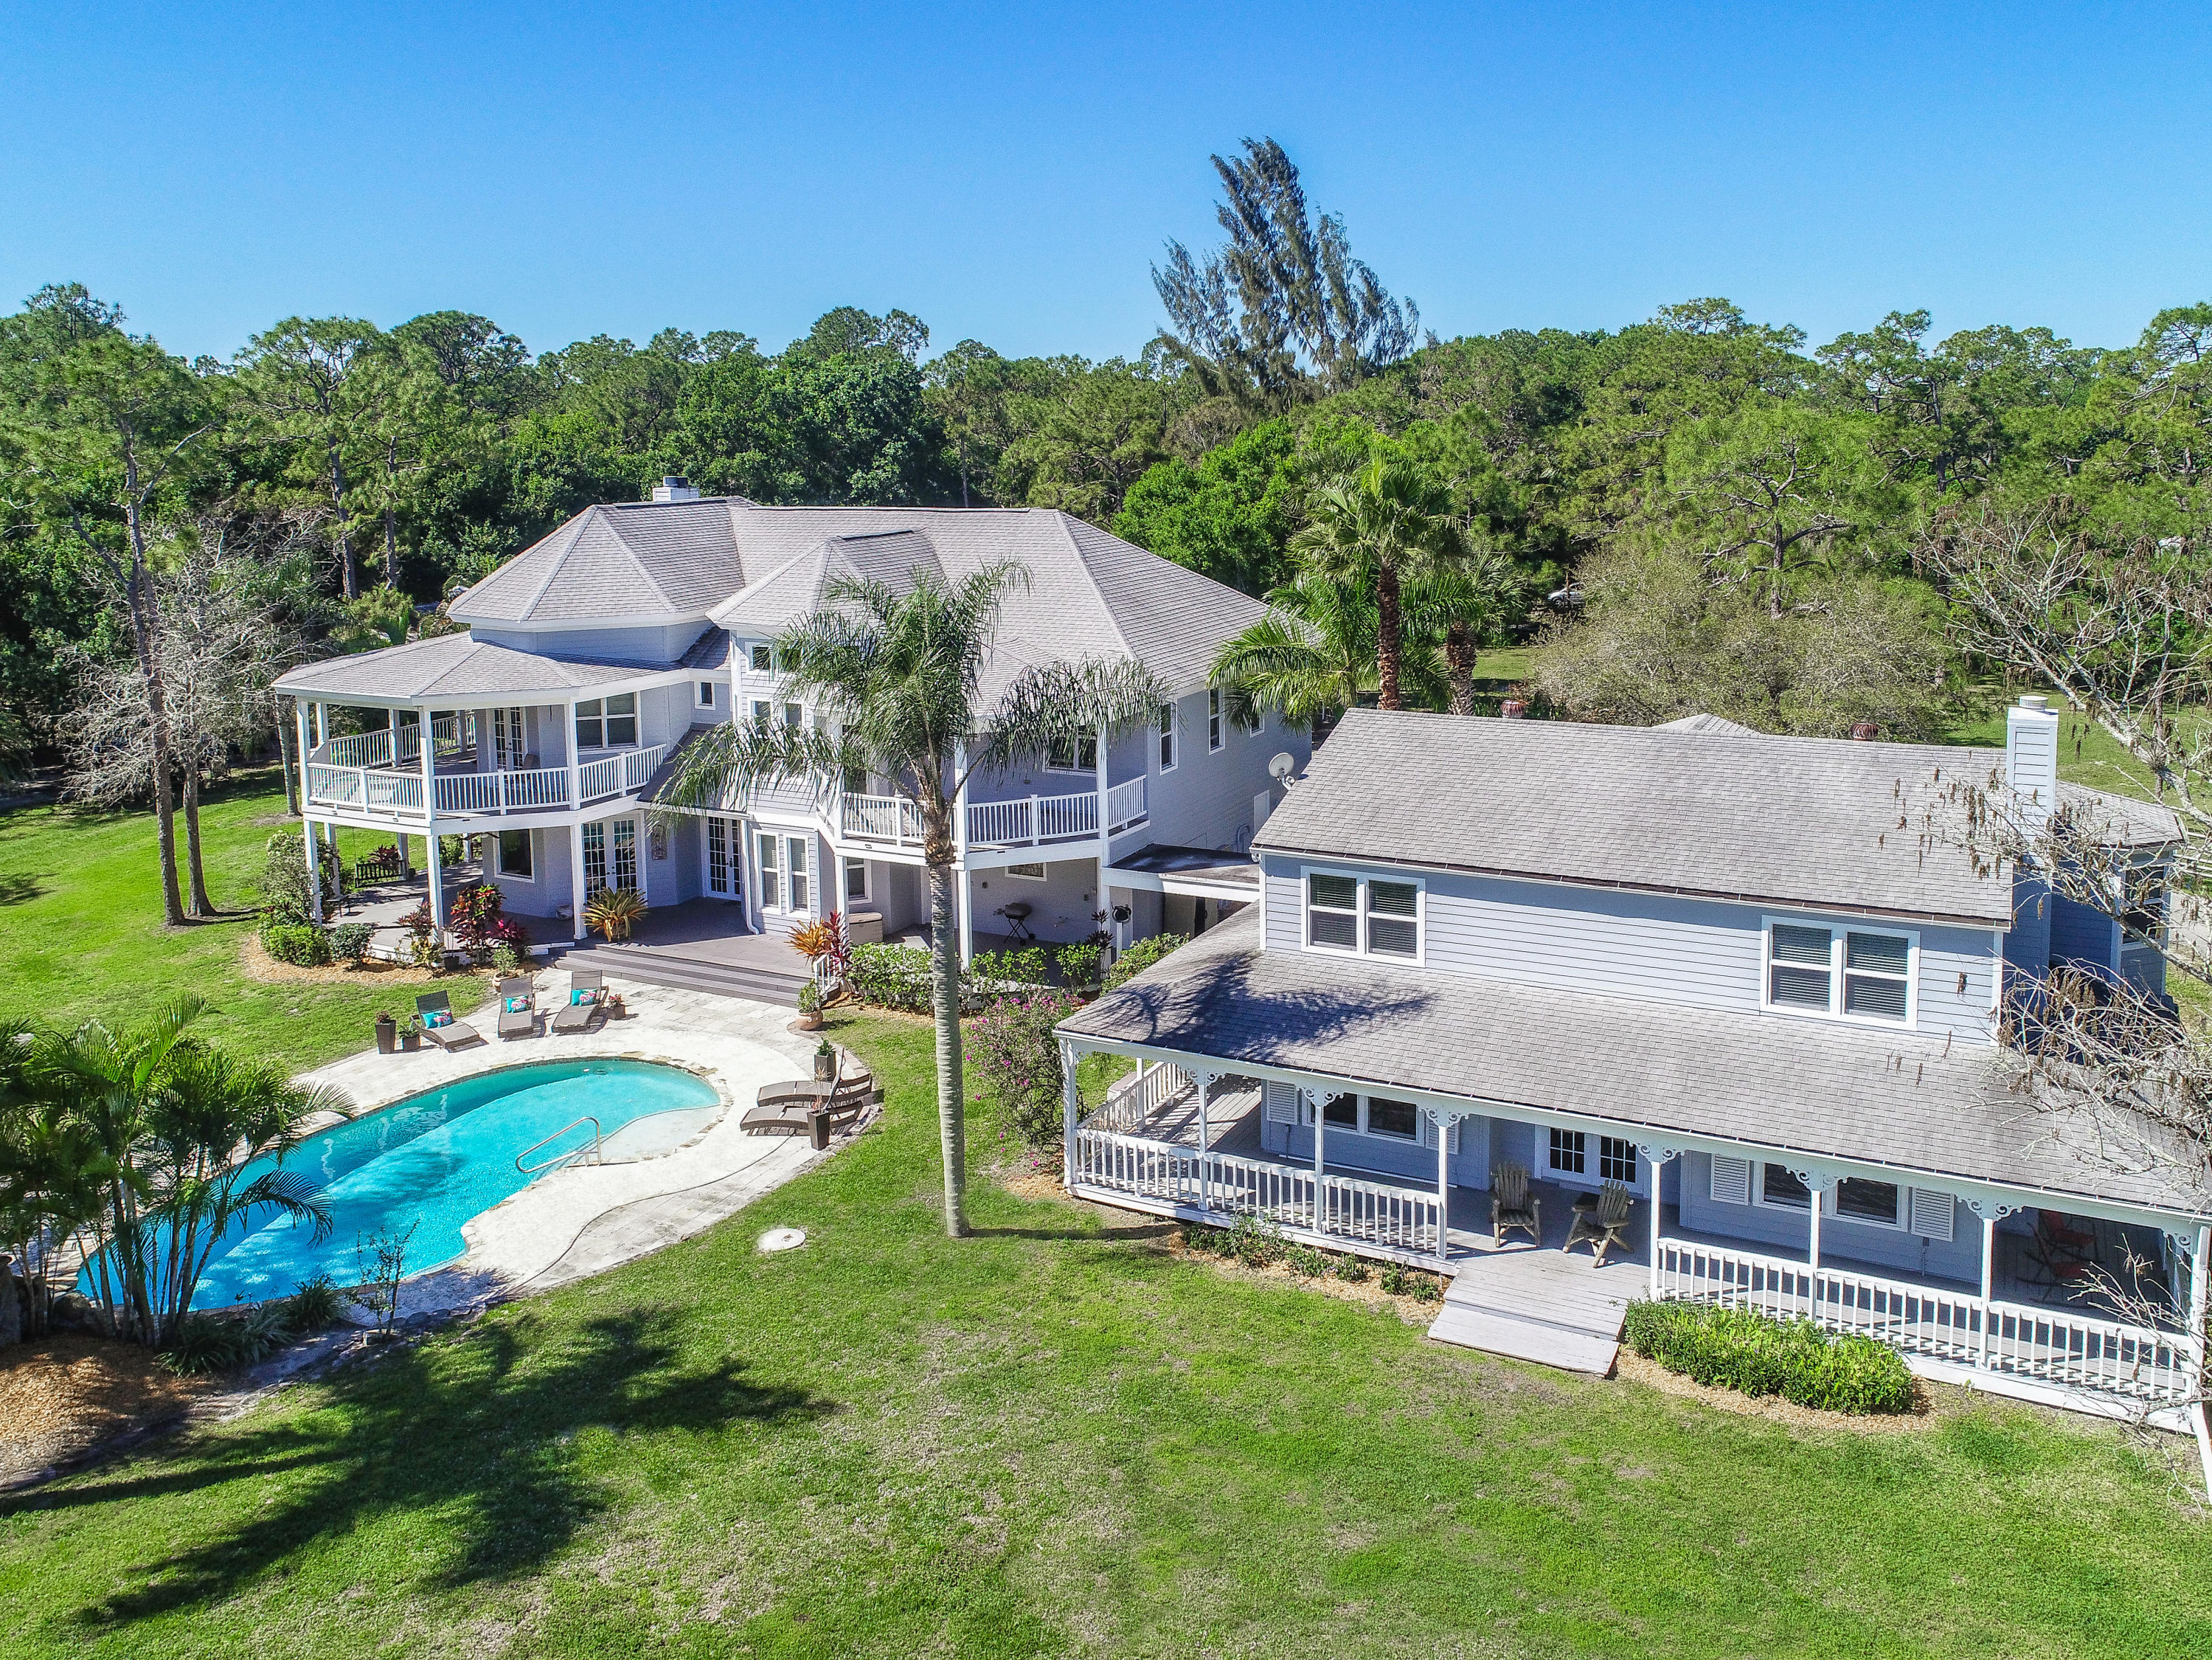 New Home for sale at 17593 Rocky Pines Road in Jupiter